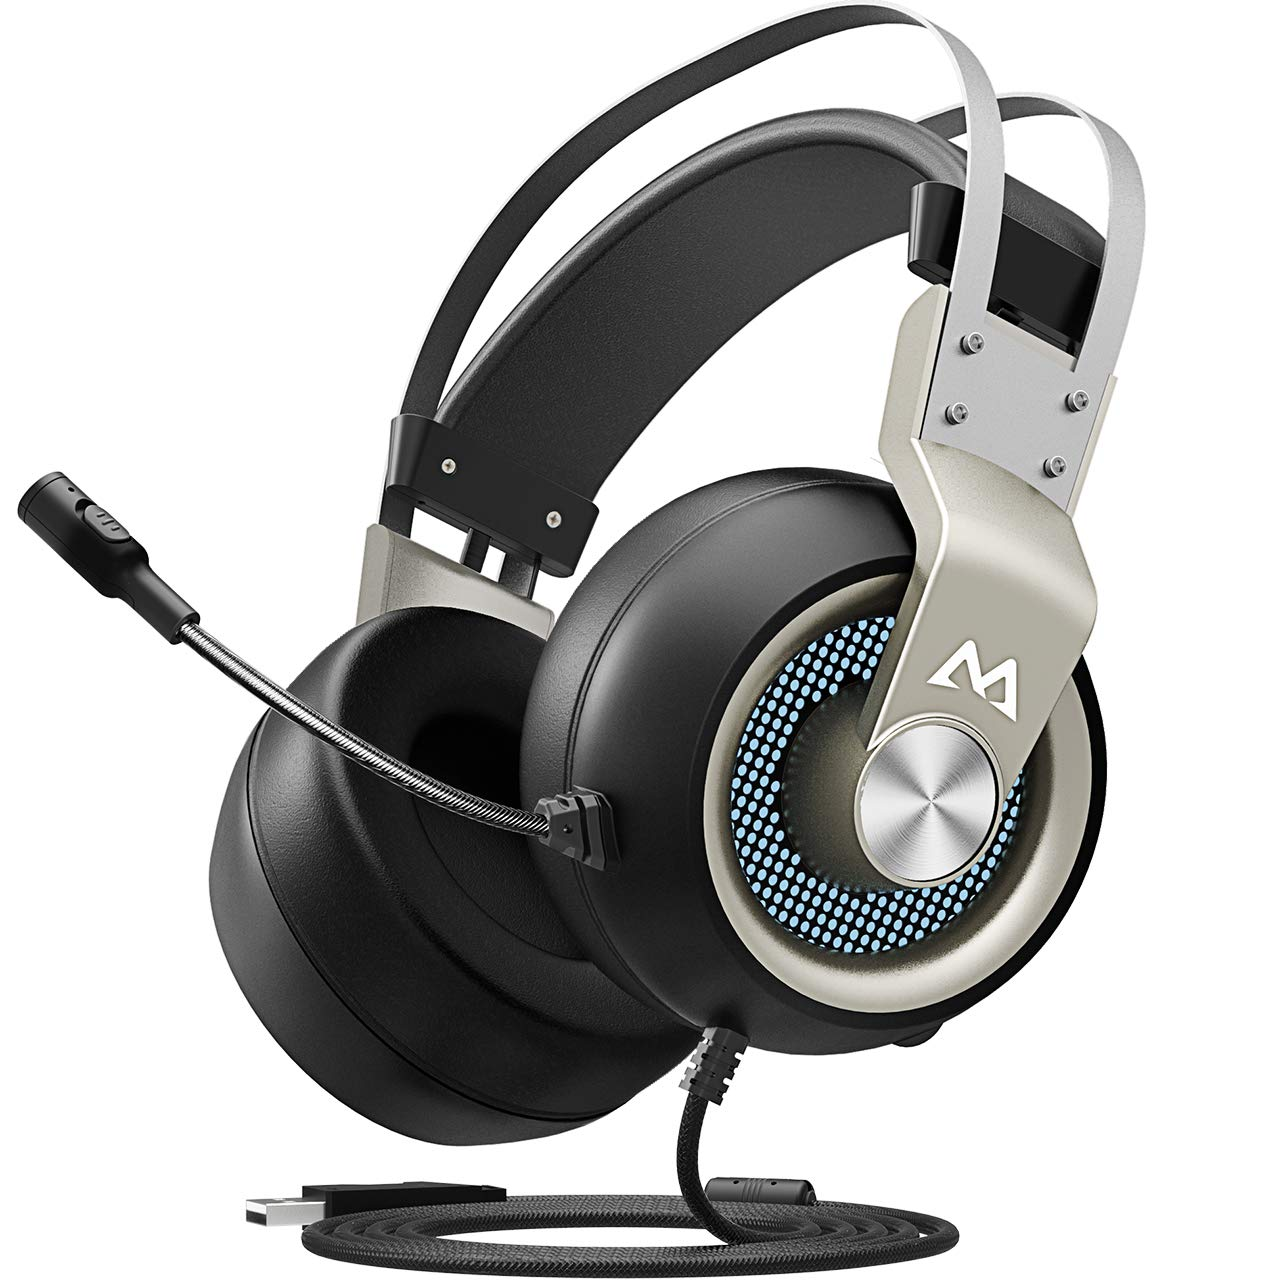 Mpow Eg3(Series II) PC Gaming Headset 7.1 Surround Sound, PS4 USB Headset with Mic, Gaming Grade 50mm Drivers, Surround EQ Setting, Mic/Volume Control, Soft Earmuffs LED Gaming Headphones for PC/PS4 by Mpow